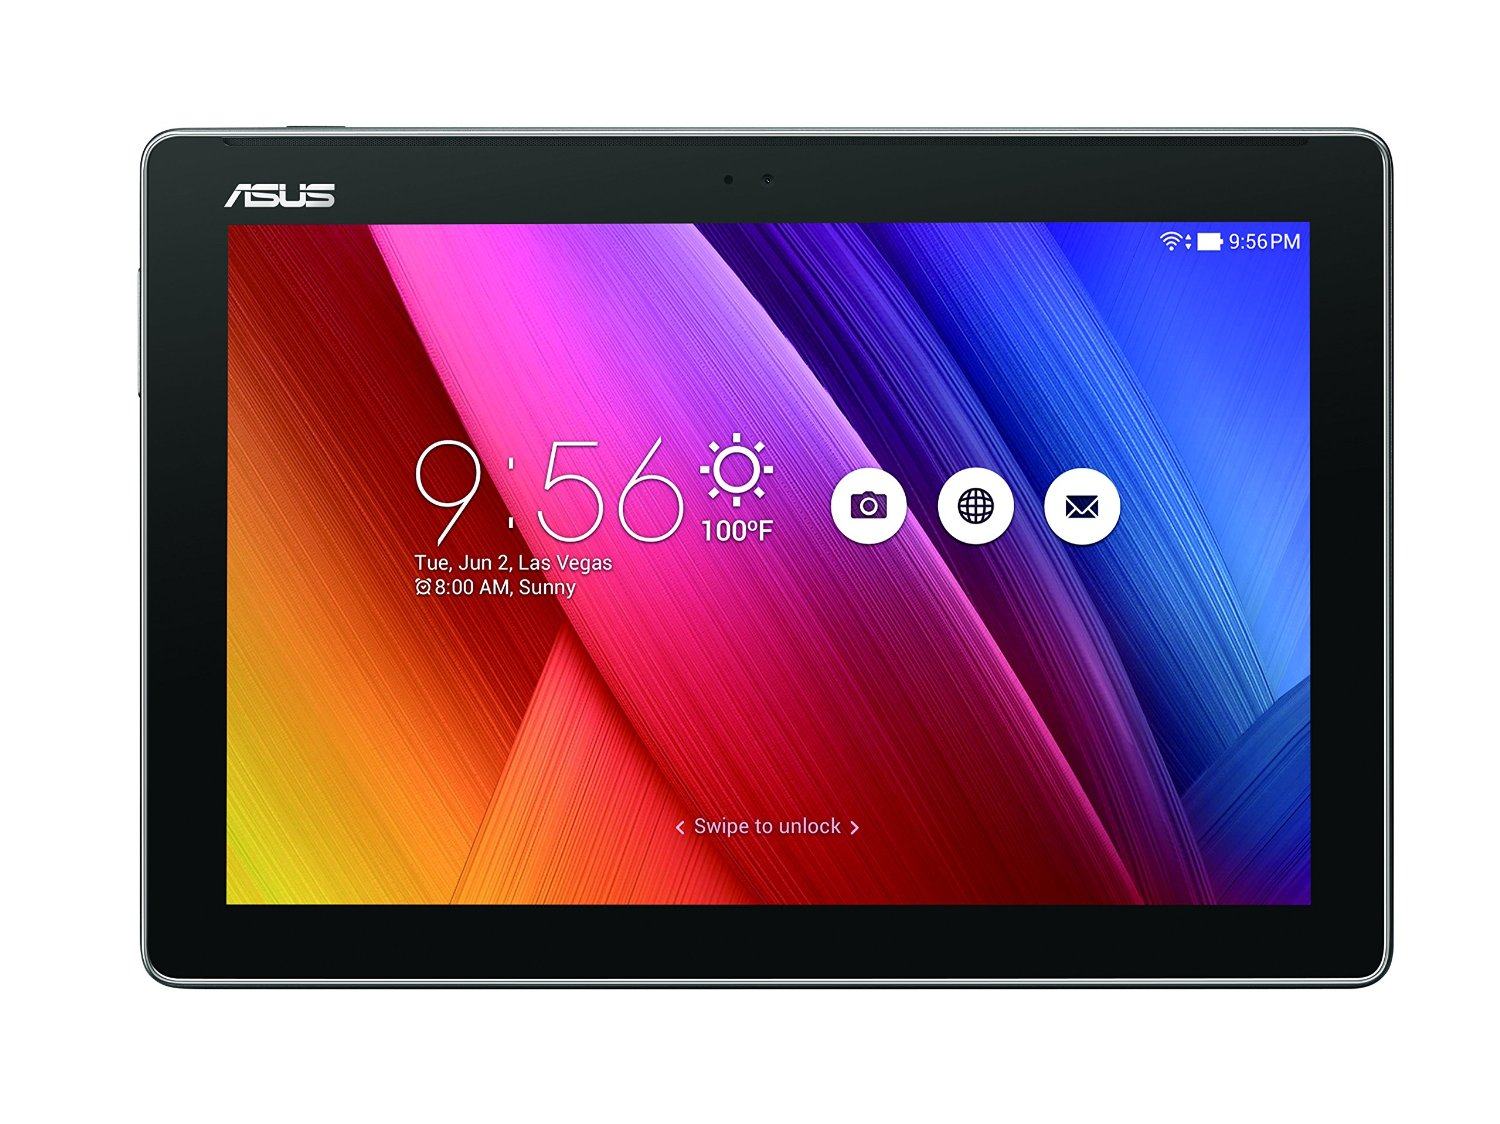 TABLET ASUS Z300CNL DARK GRAY